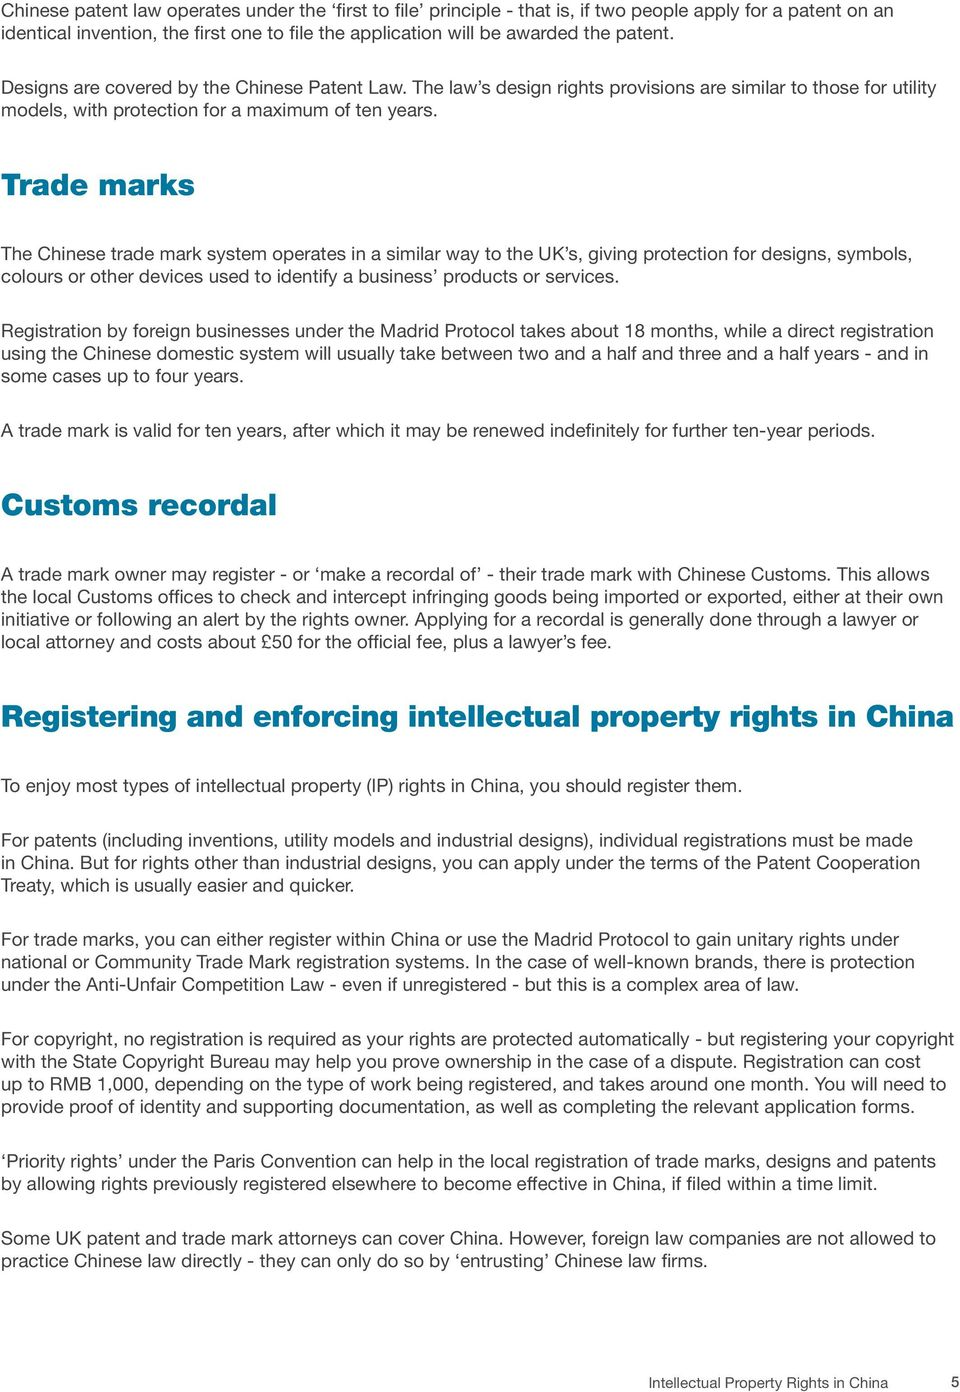 Trade marks The Chinese trade mark system operates in a similar way to the UK s, giving protection for designs, symbols, colours or other devices used to identify a business products or services.